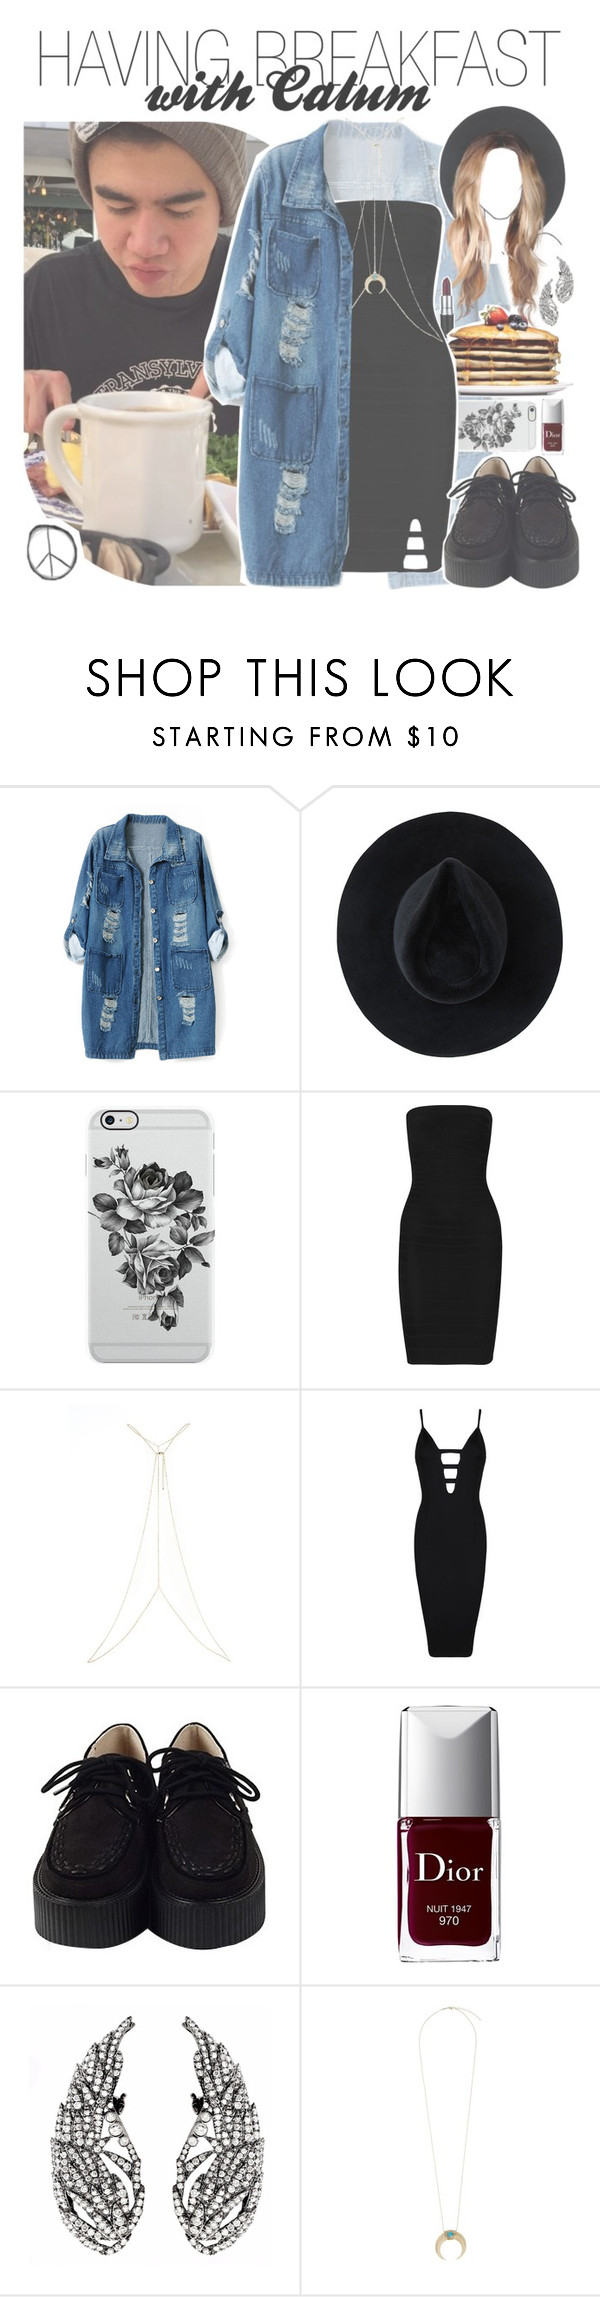 """""""having breakfast with calum"""" by fangirlsets ❤ liked on Polyvore featuring Chicnova Fashion, Ryan Roche, Uncommon, M.A.C, Hervé Léger, River Island, Posh Girl, Christian Dior and Jacquie Aiche"""